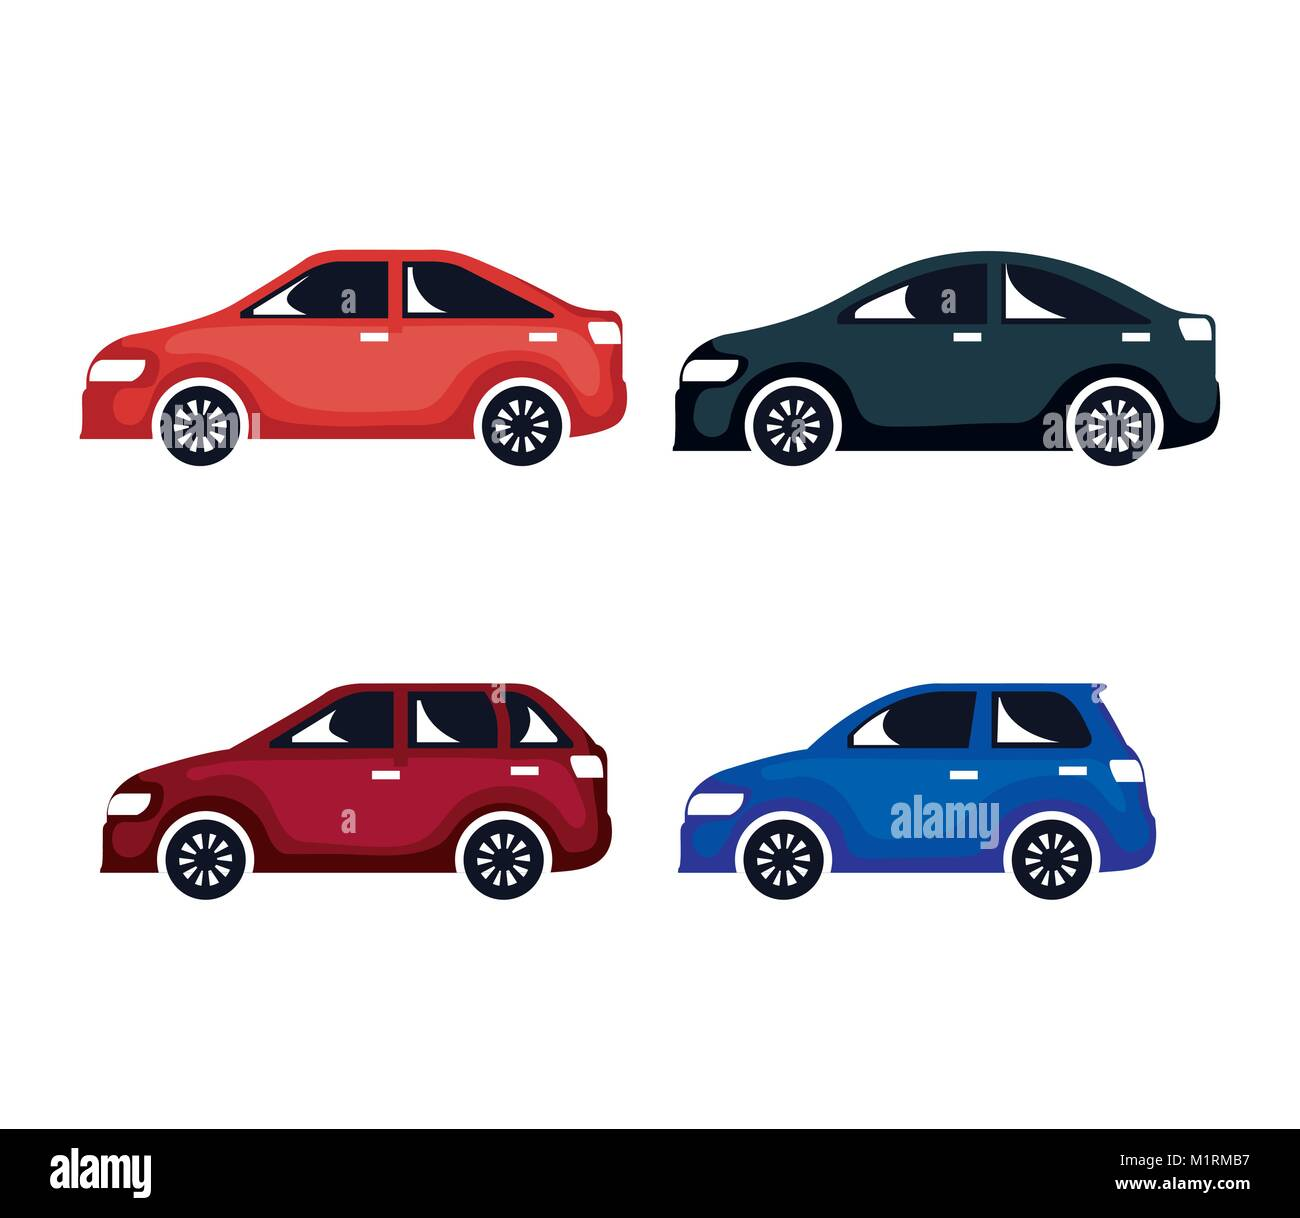 group of cars sedan icons - Stock Image